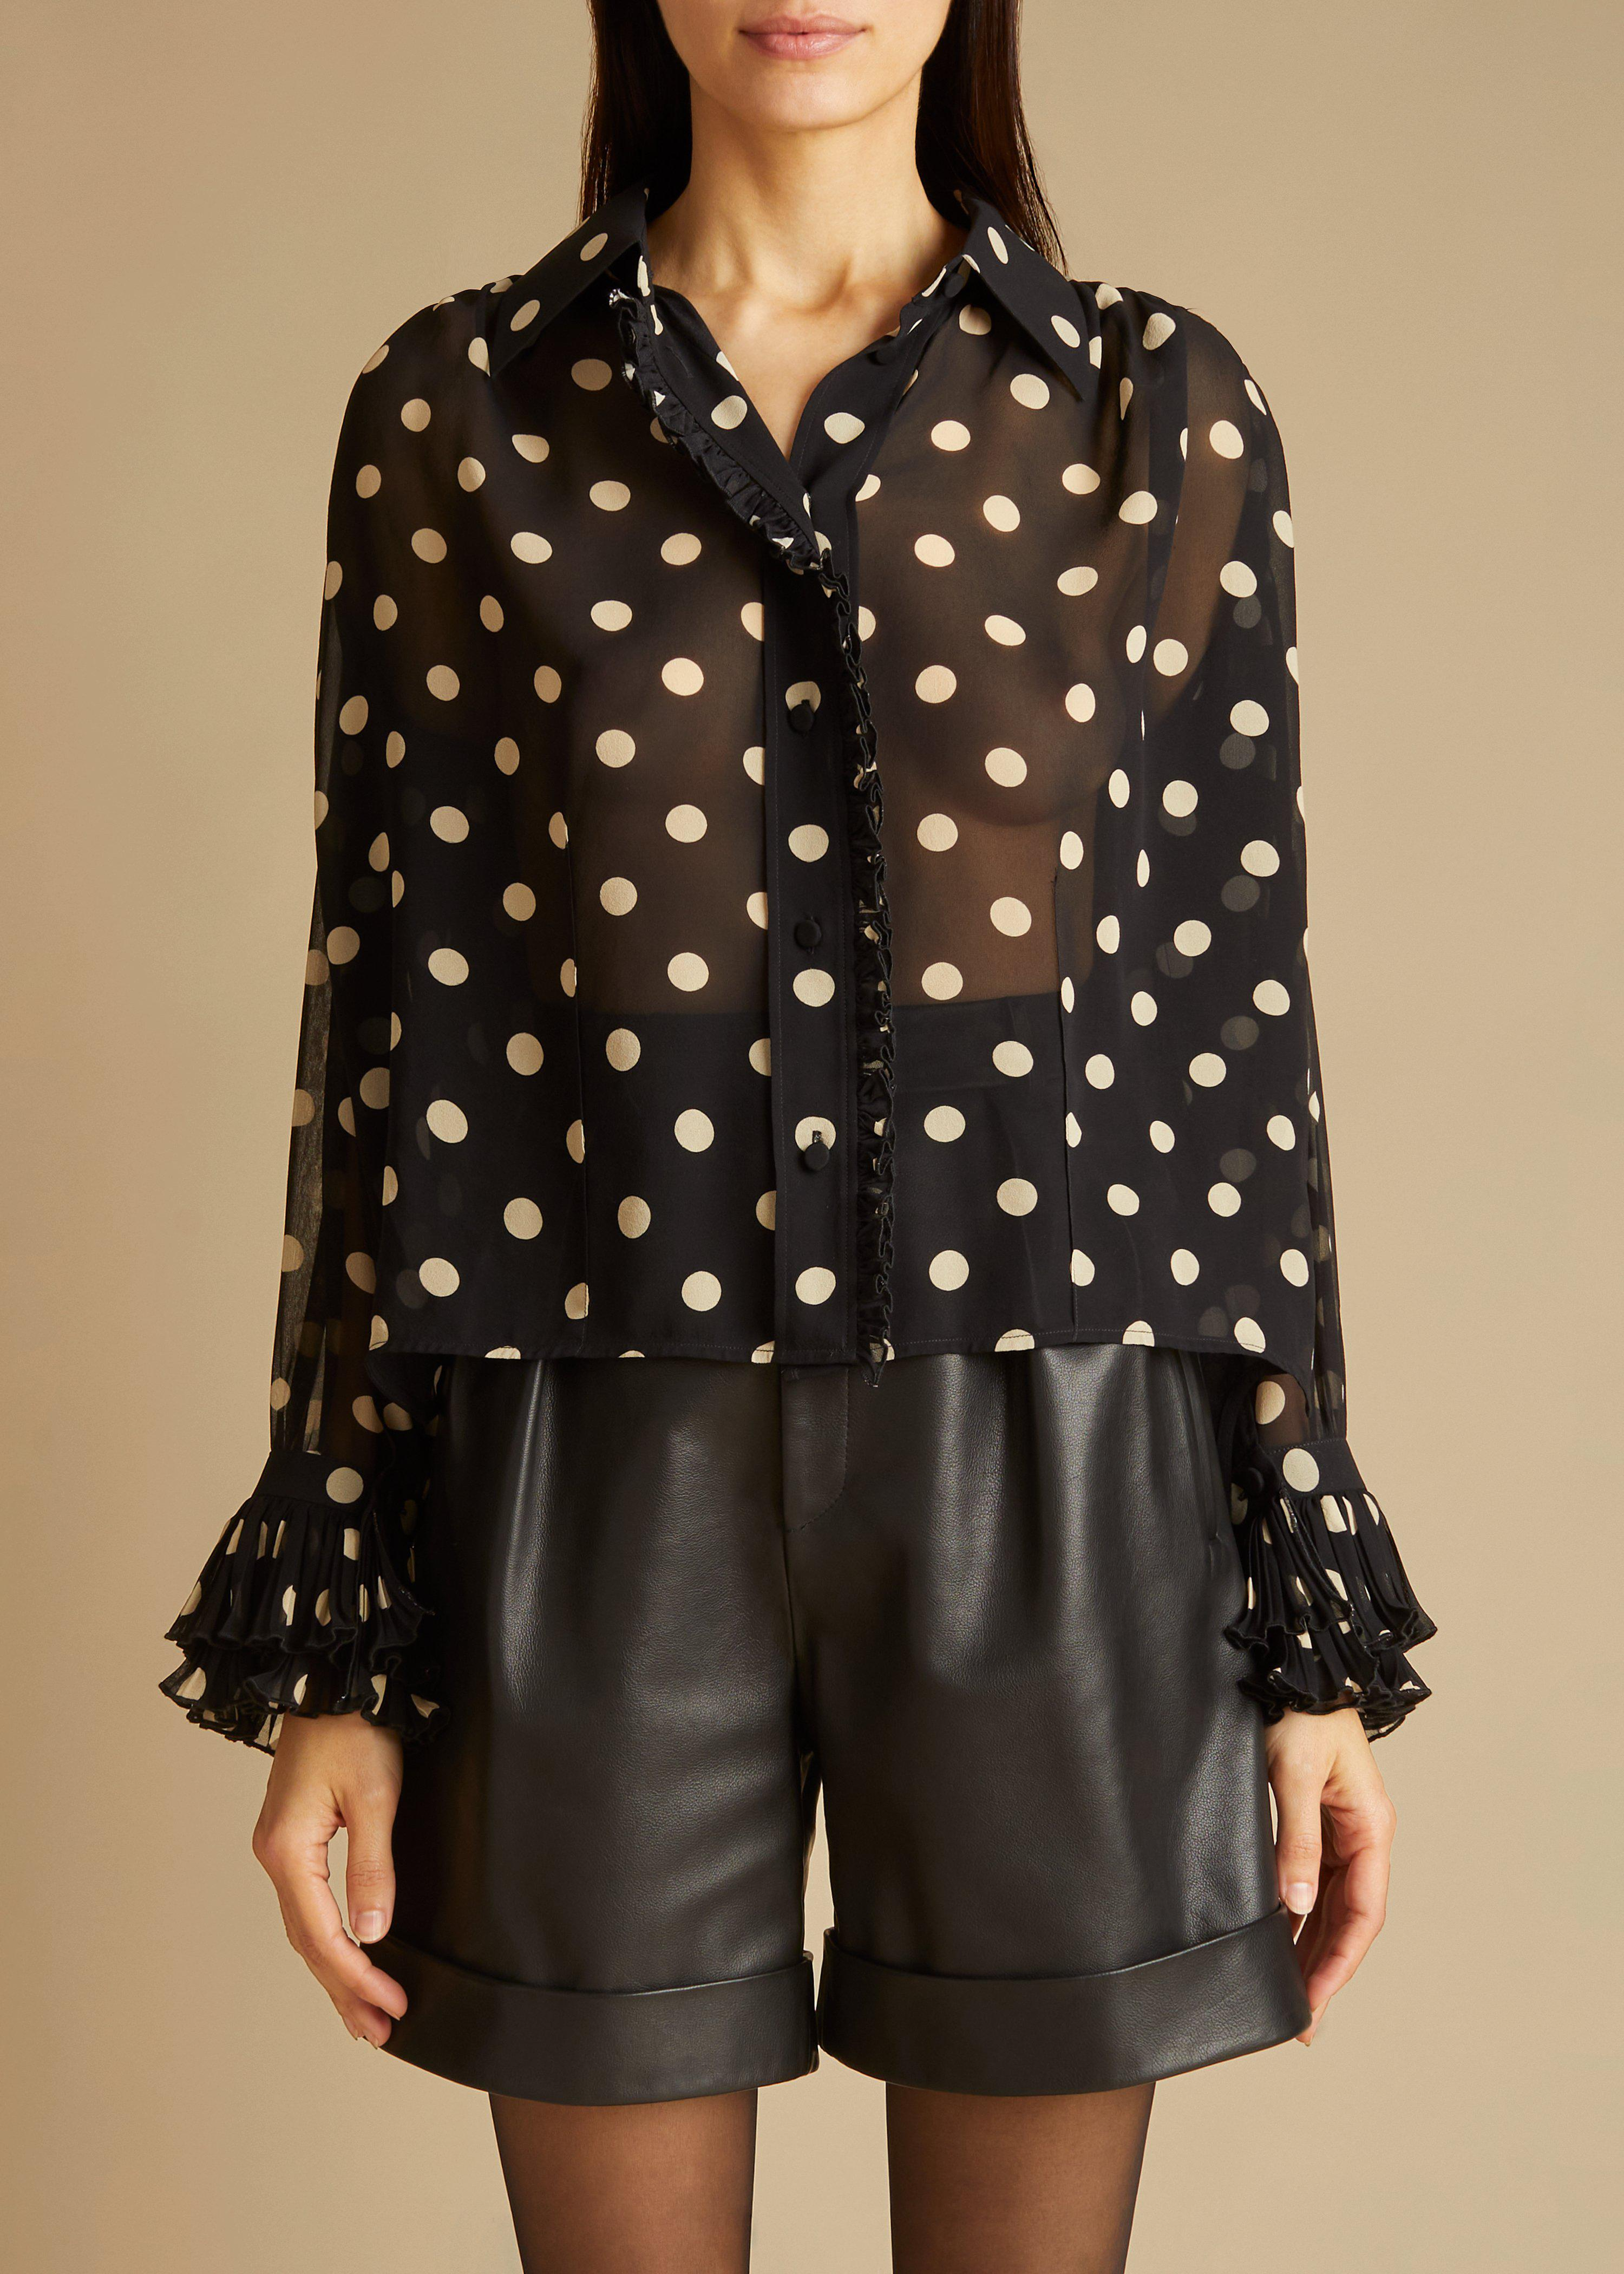 The Vanina Top in Black and Creme Dot 2